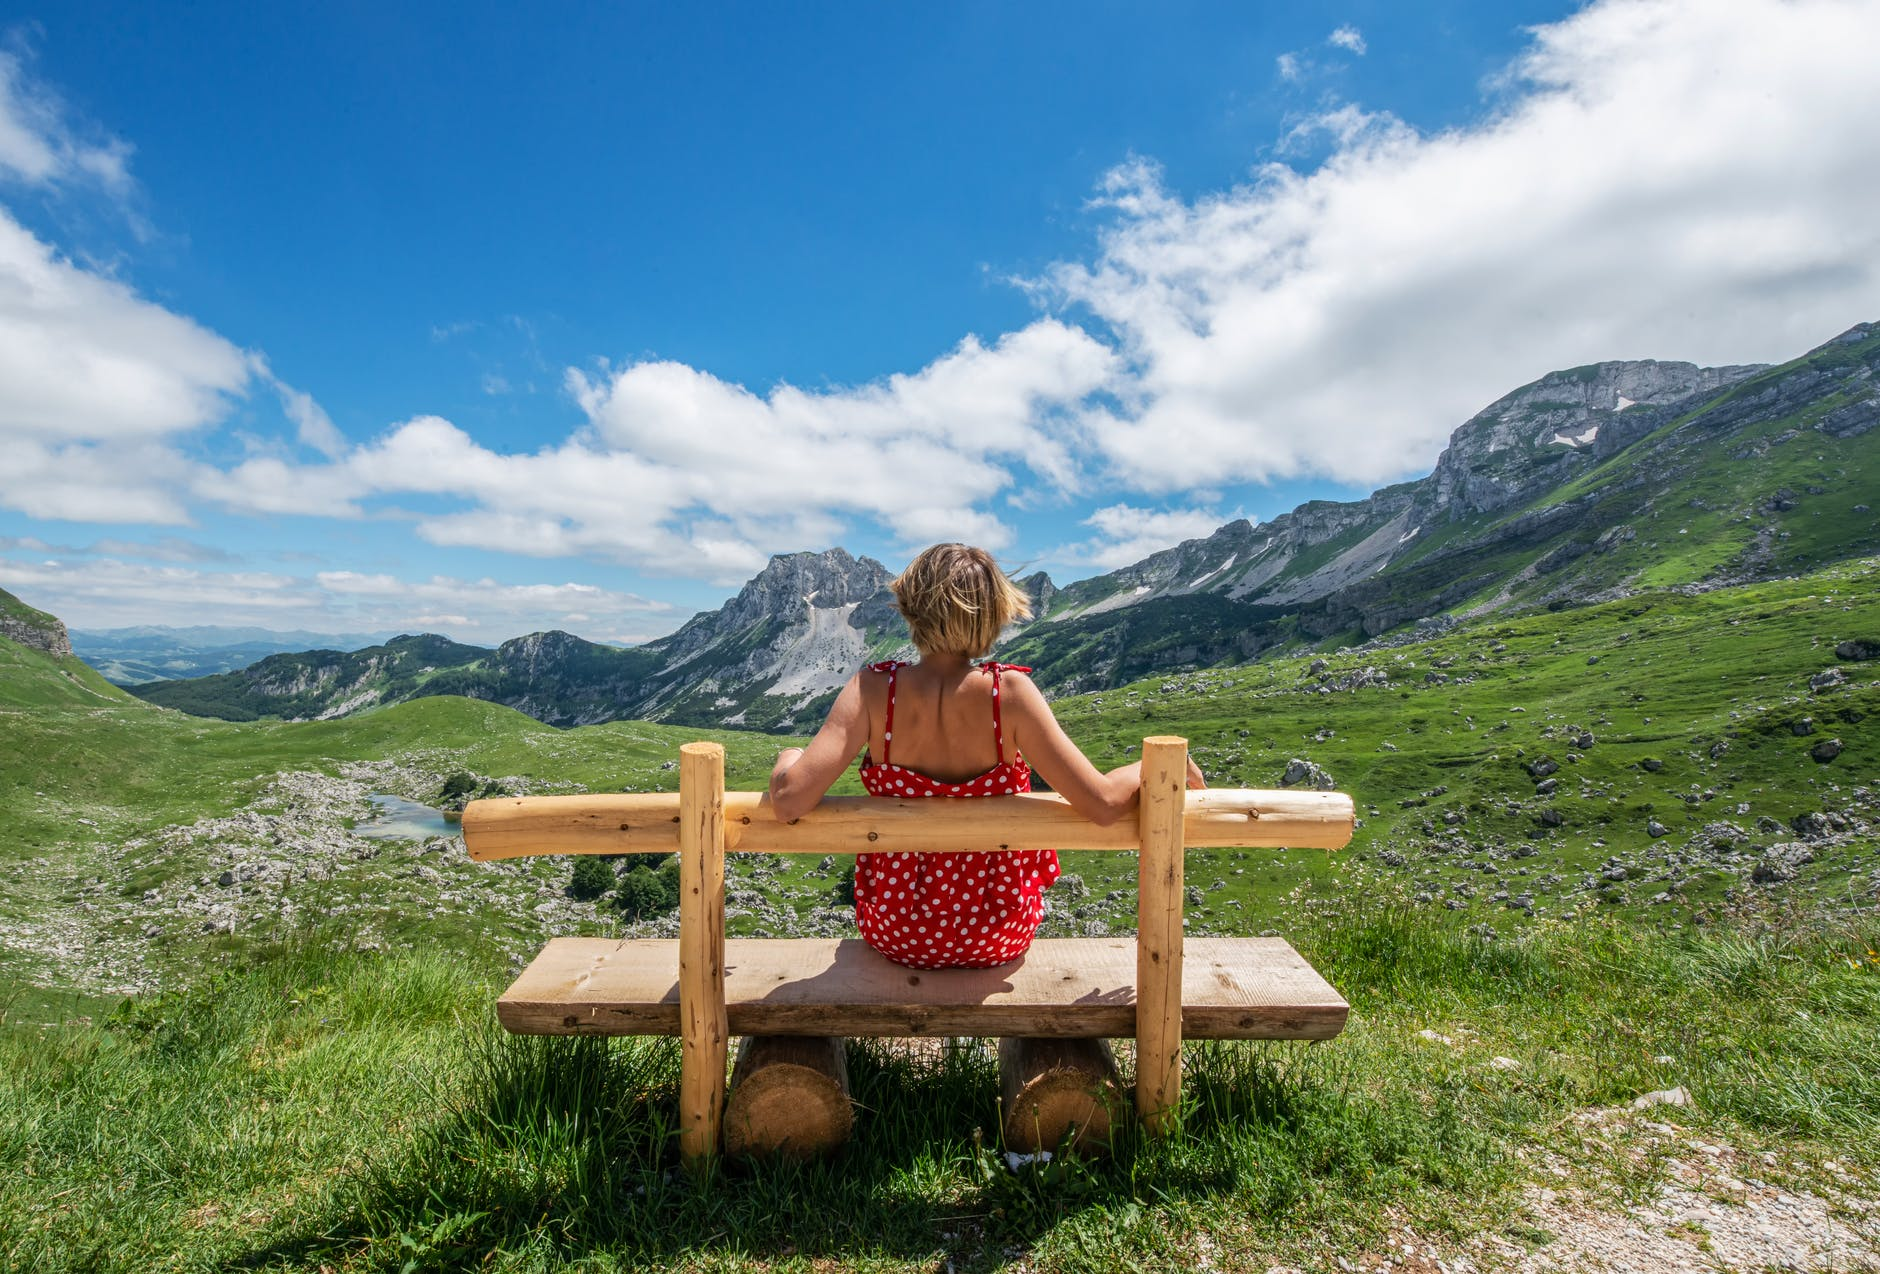 woman resting on wooden bench in meadow with fresh grass